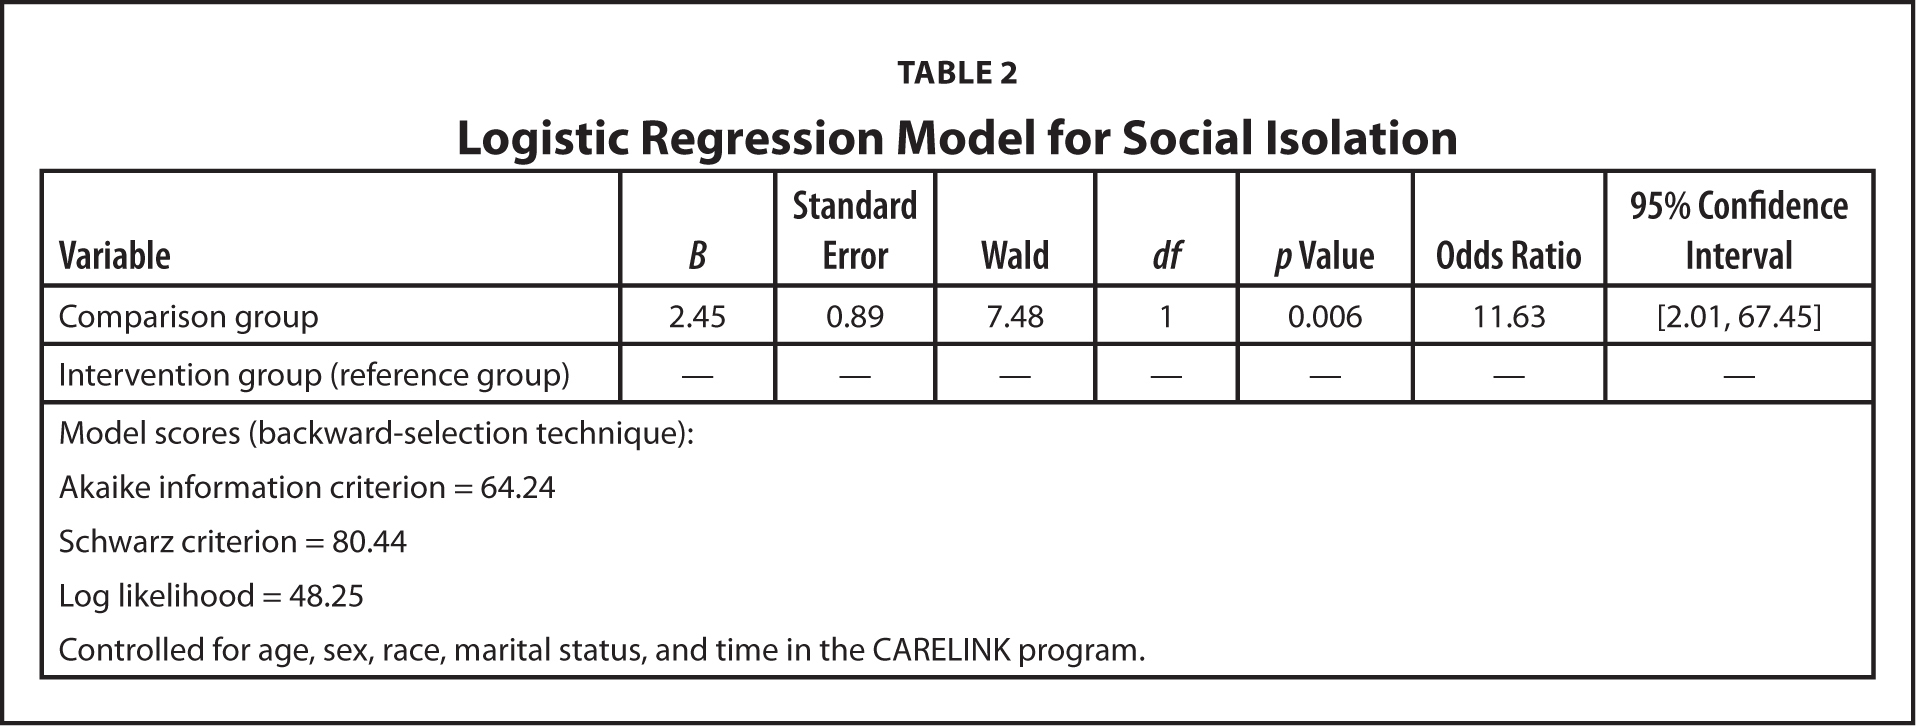 Logistic Regression Model for Social Isolation